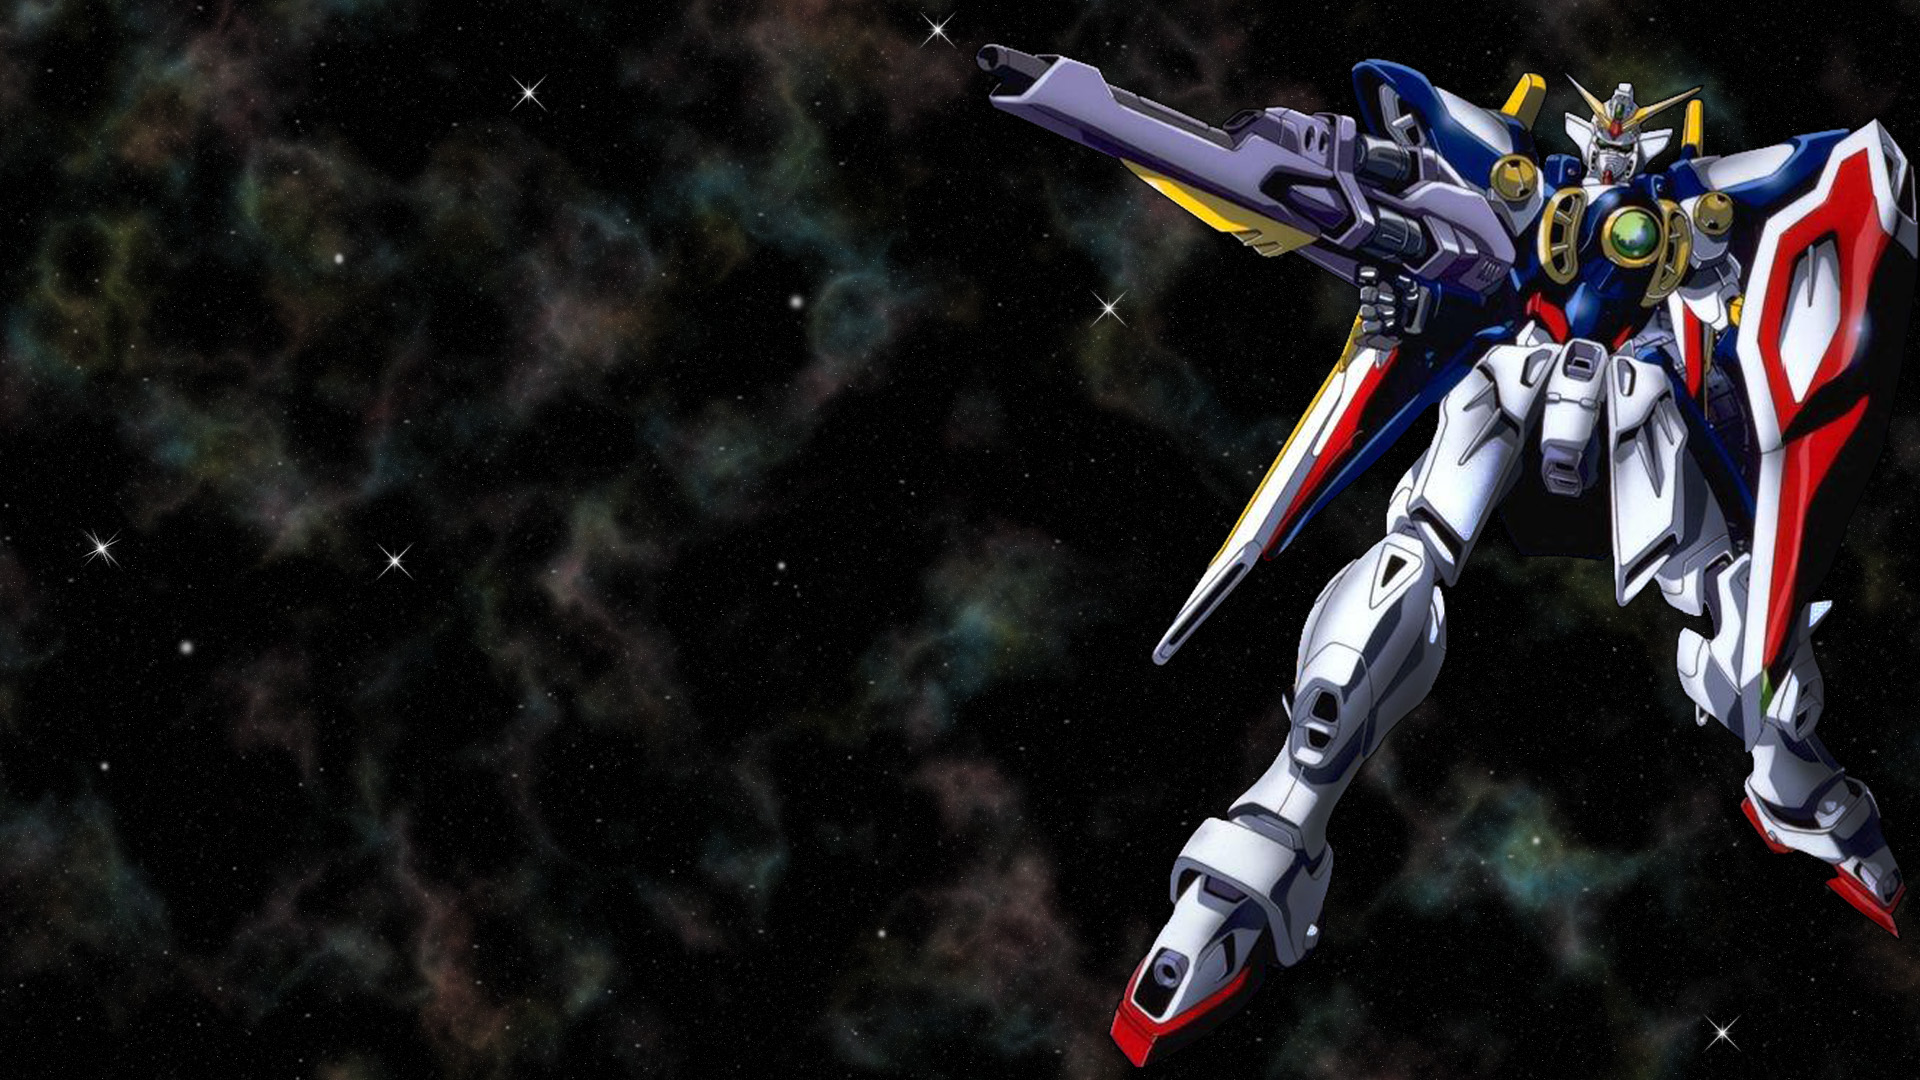 wallpaper background general wallpaper wallpapers gundam red 1920x1080